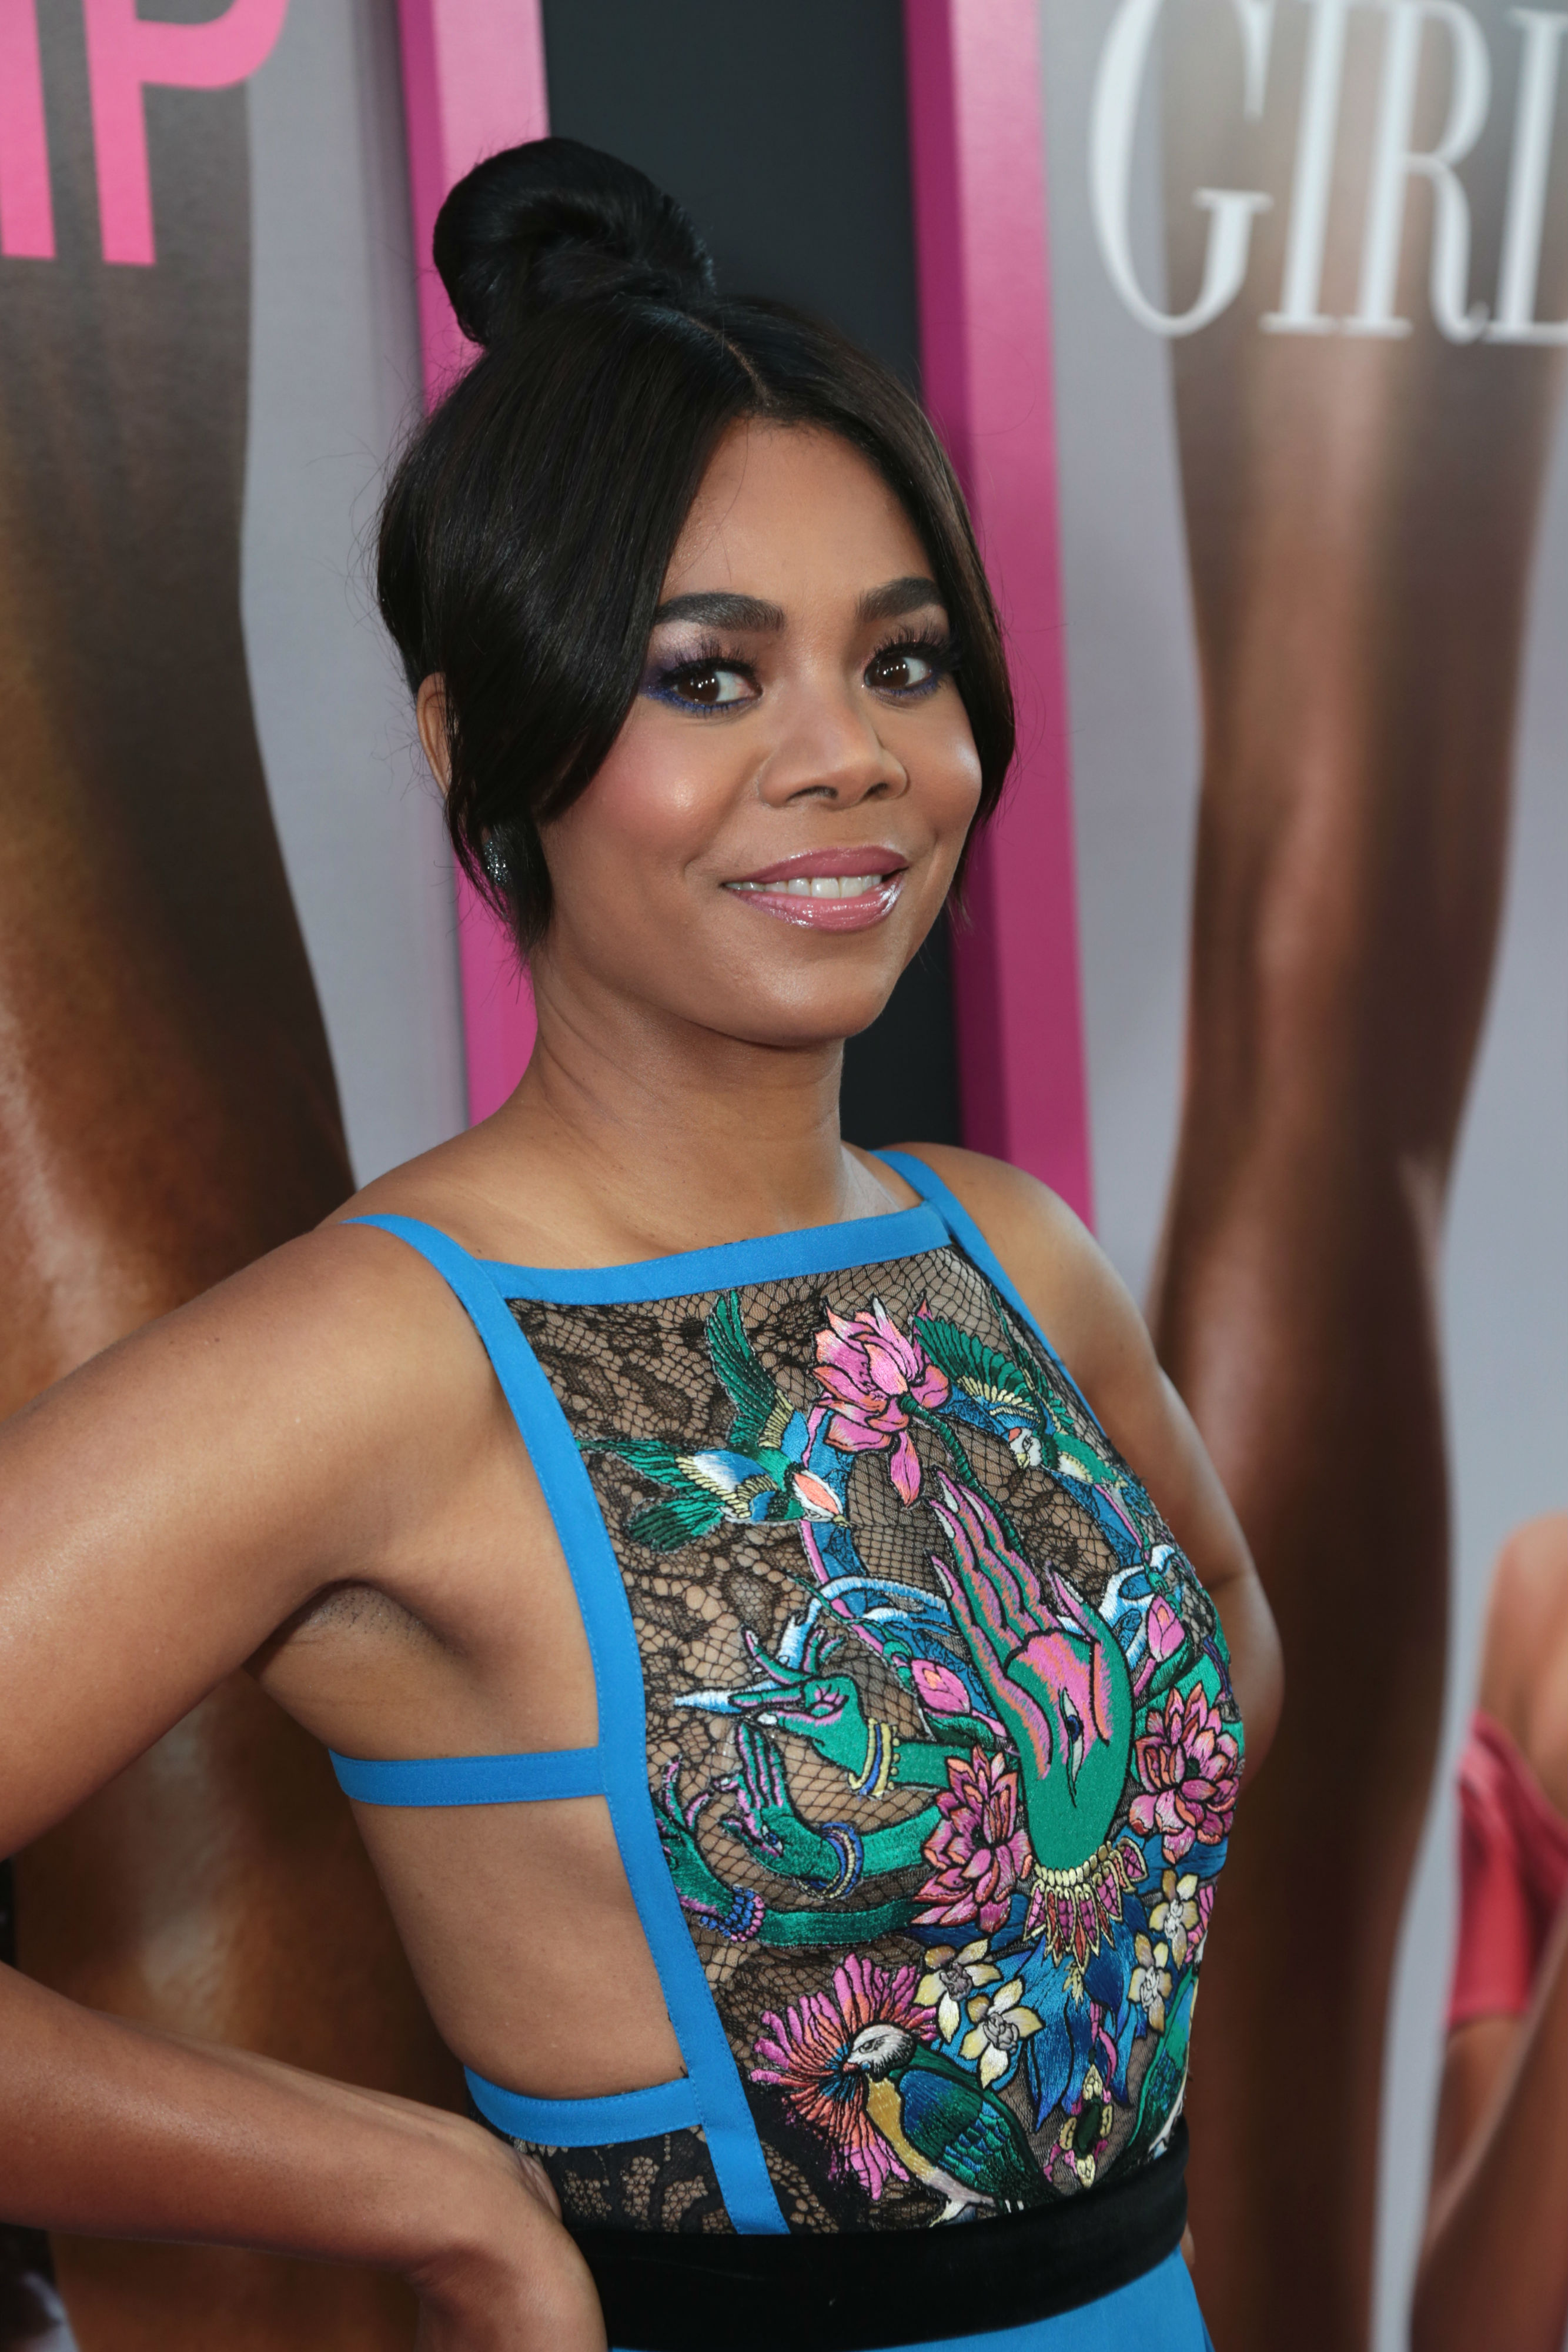 Herself As An Essence Woman Who Is Black Girl Magic Jada Pinkett Smith Queen Latifah Tiffany Haddish And Regina Hall Have A Summer Hit That Sizzles